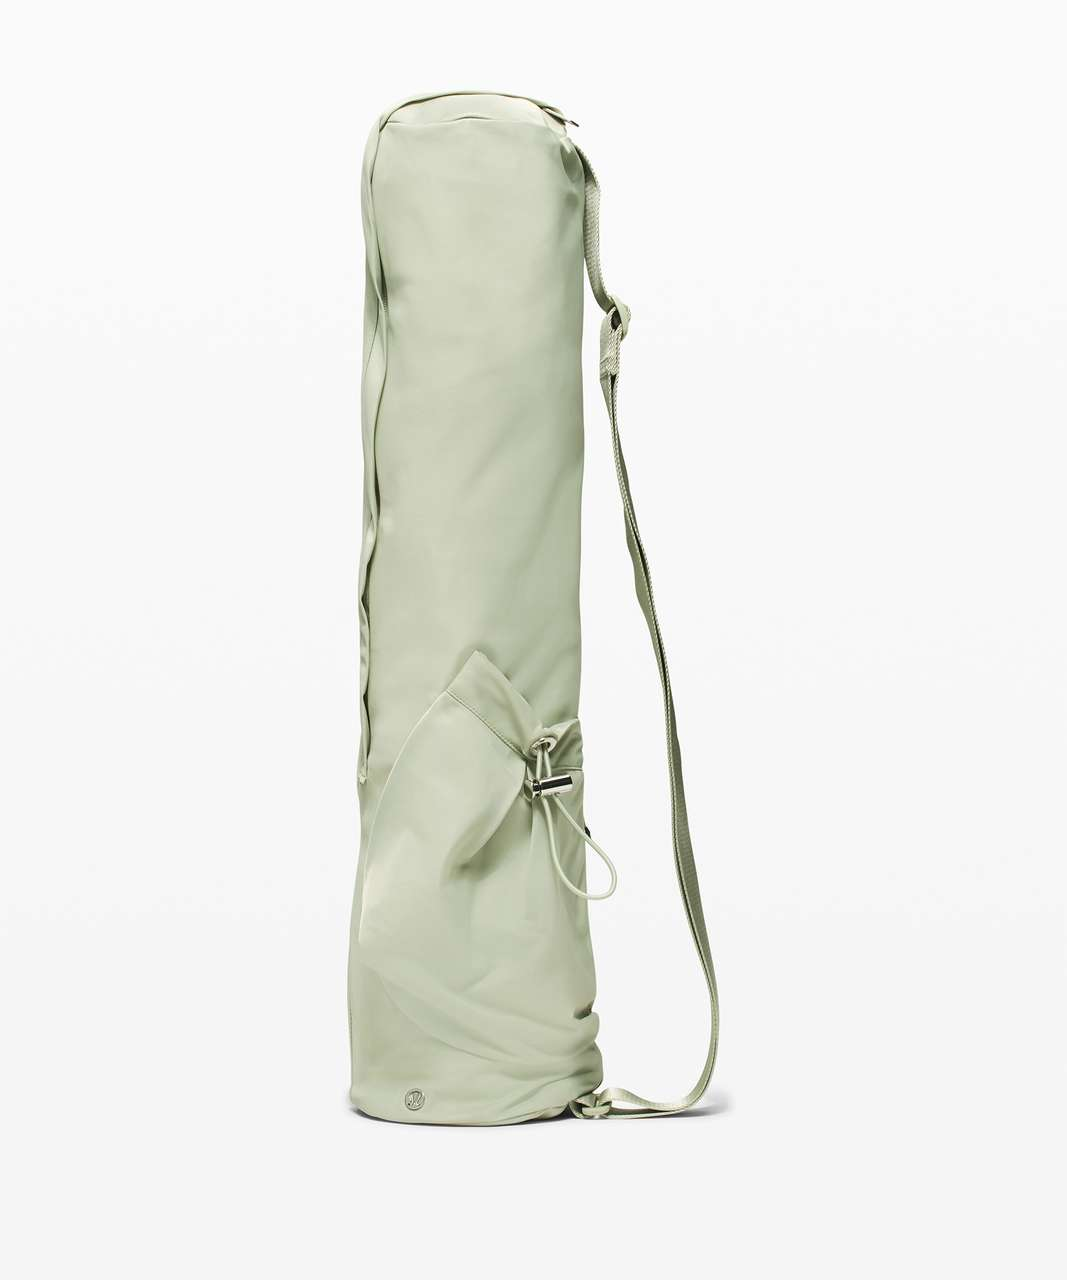 Lululemon The Yoga Mat Bag *16L - Green Fern